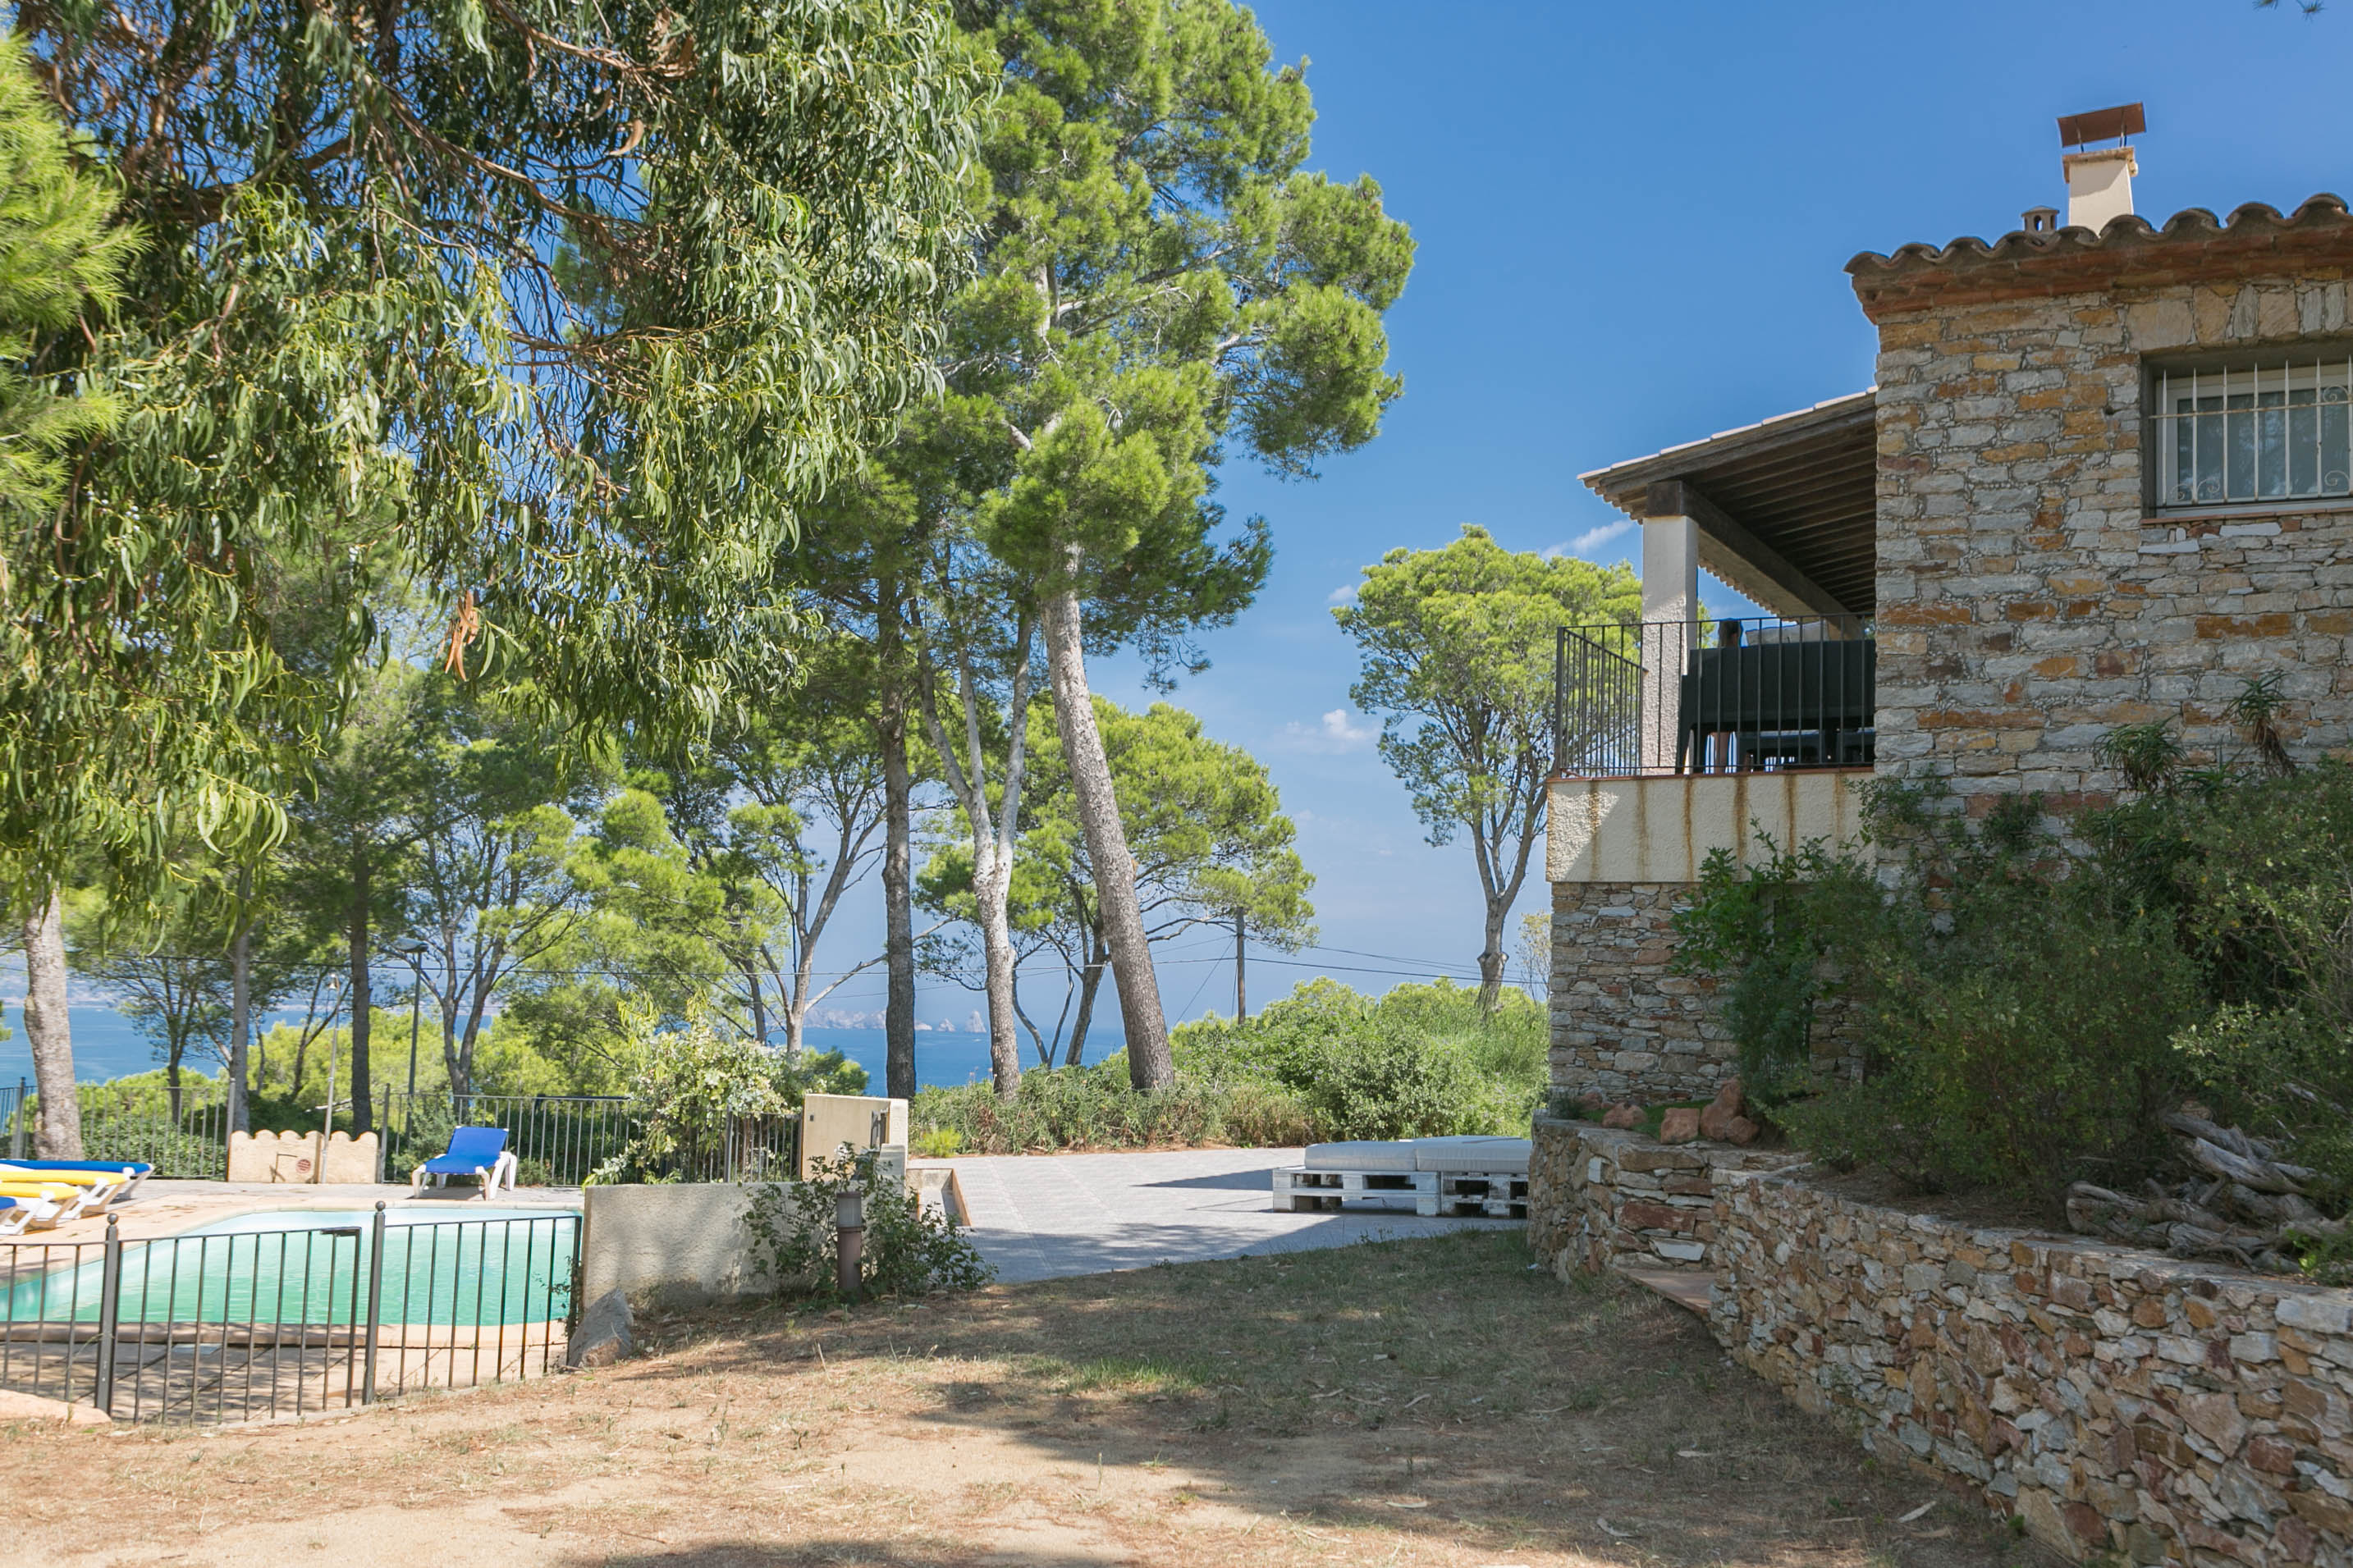 6 bedroom villa in Begur sea views close to the beach and  (Ref:H40) 3